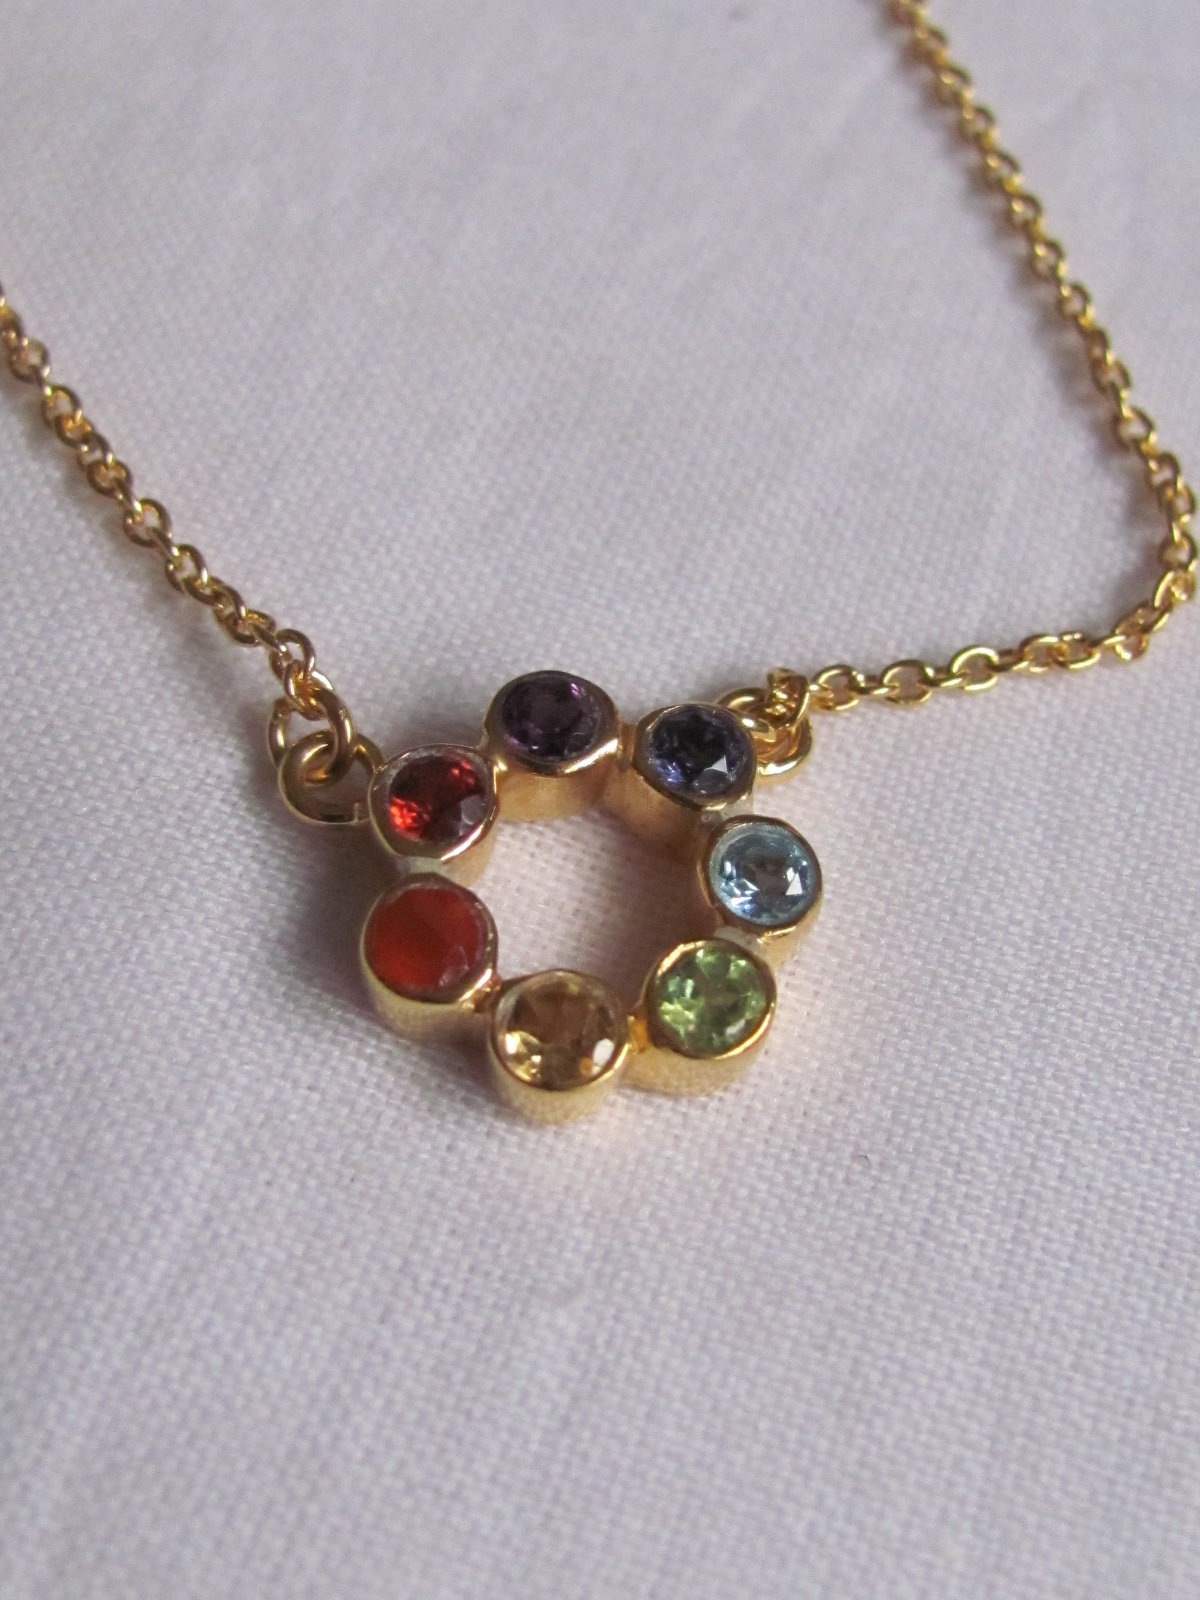 Necklace gold on silver with precious stones